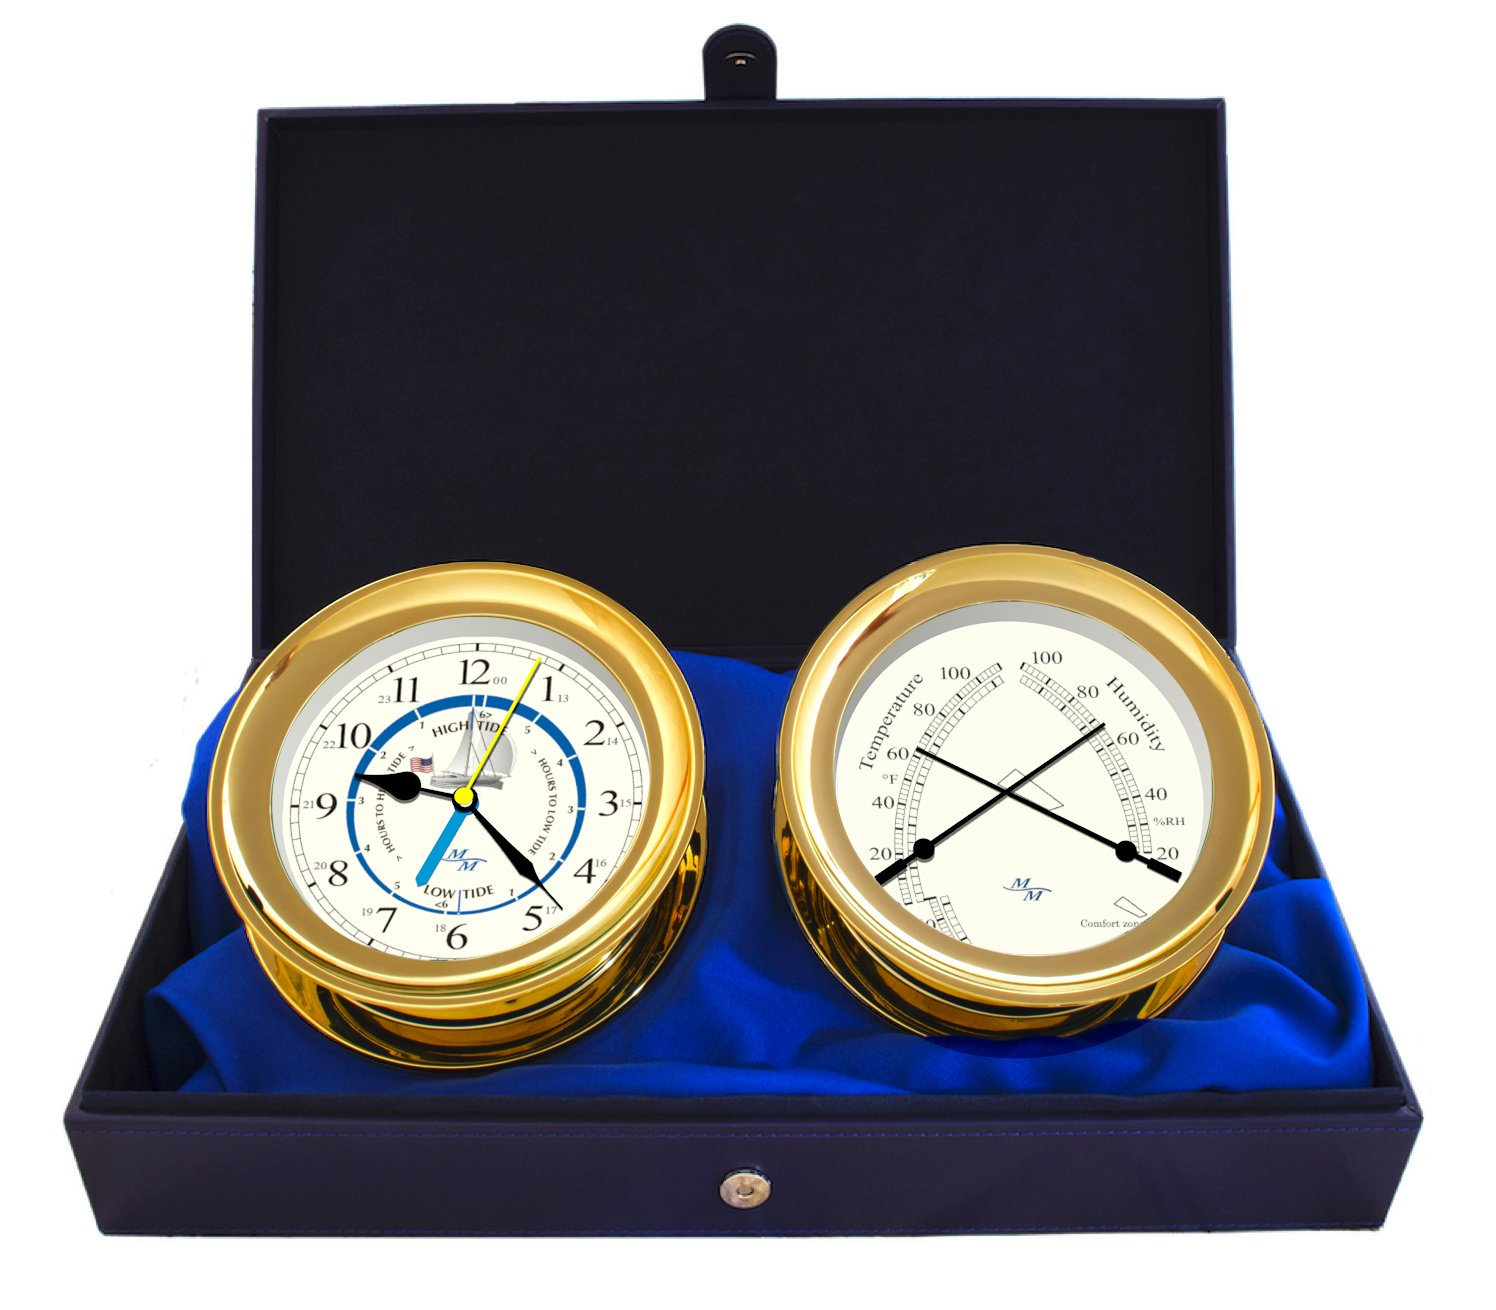 Windlass Gift Set Time & Tide Clock & Comfort Meter by Master-Mariner, Gold finish, Ivory ship dial